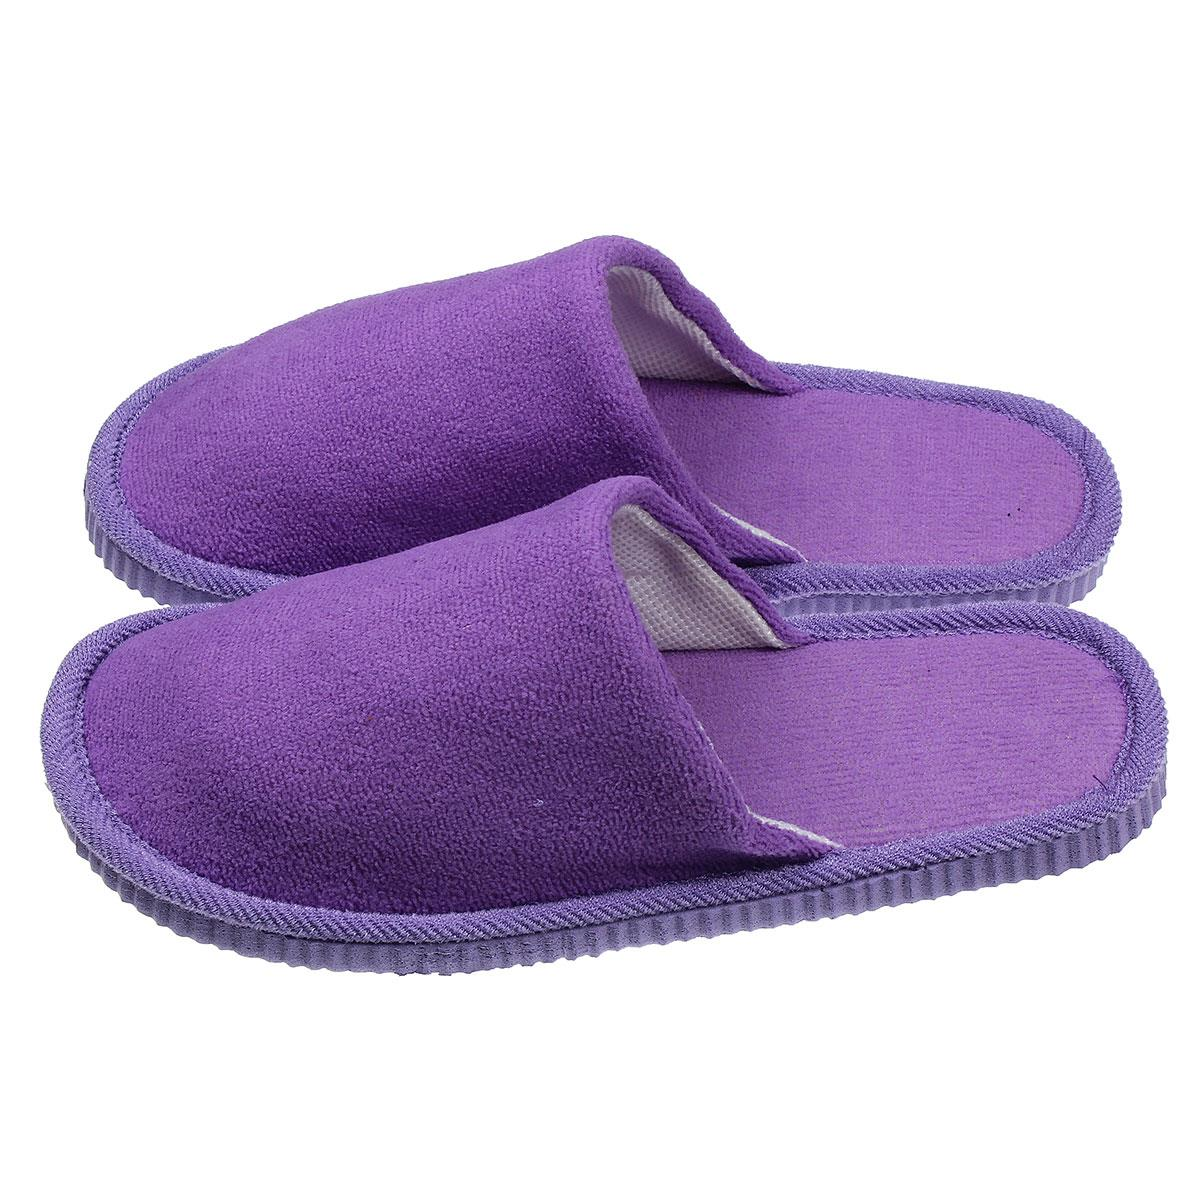 Bedroom Men Women Antislip Shoes Soft Warm Cotton House